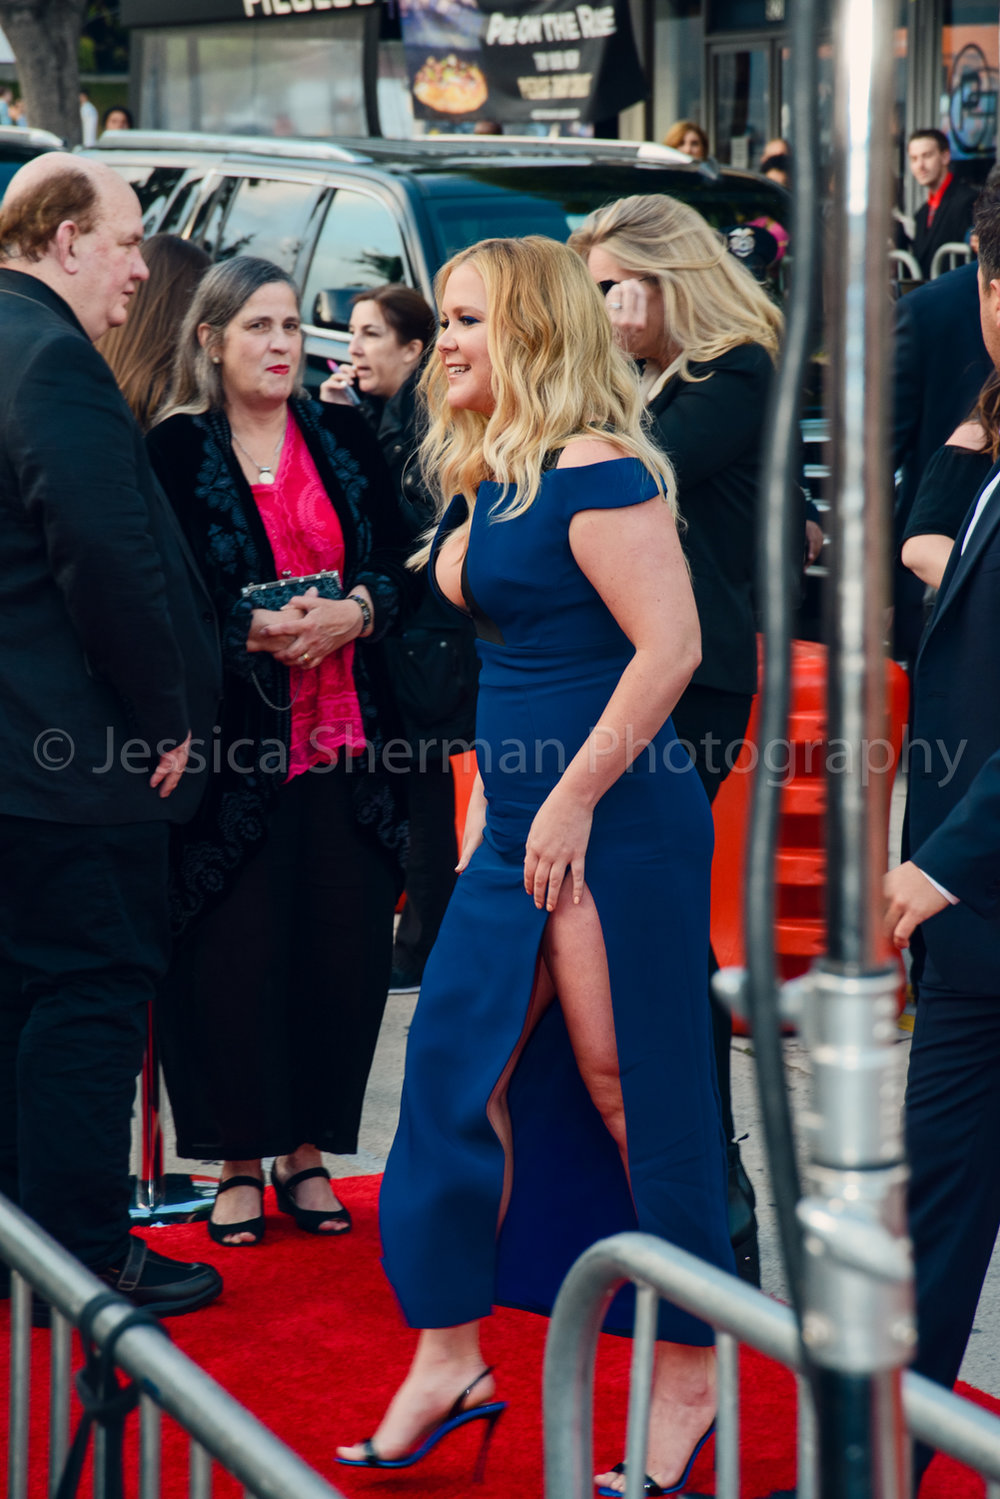 Amy_Schumer-Arrival-WEB (1 of 1).jpg